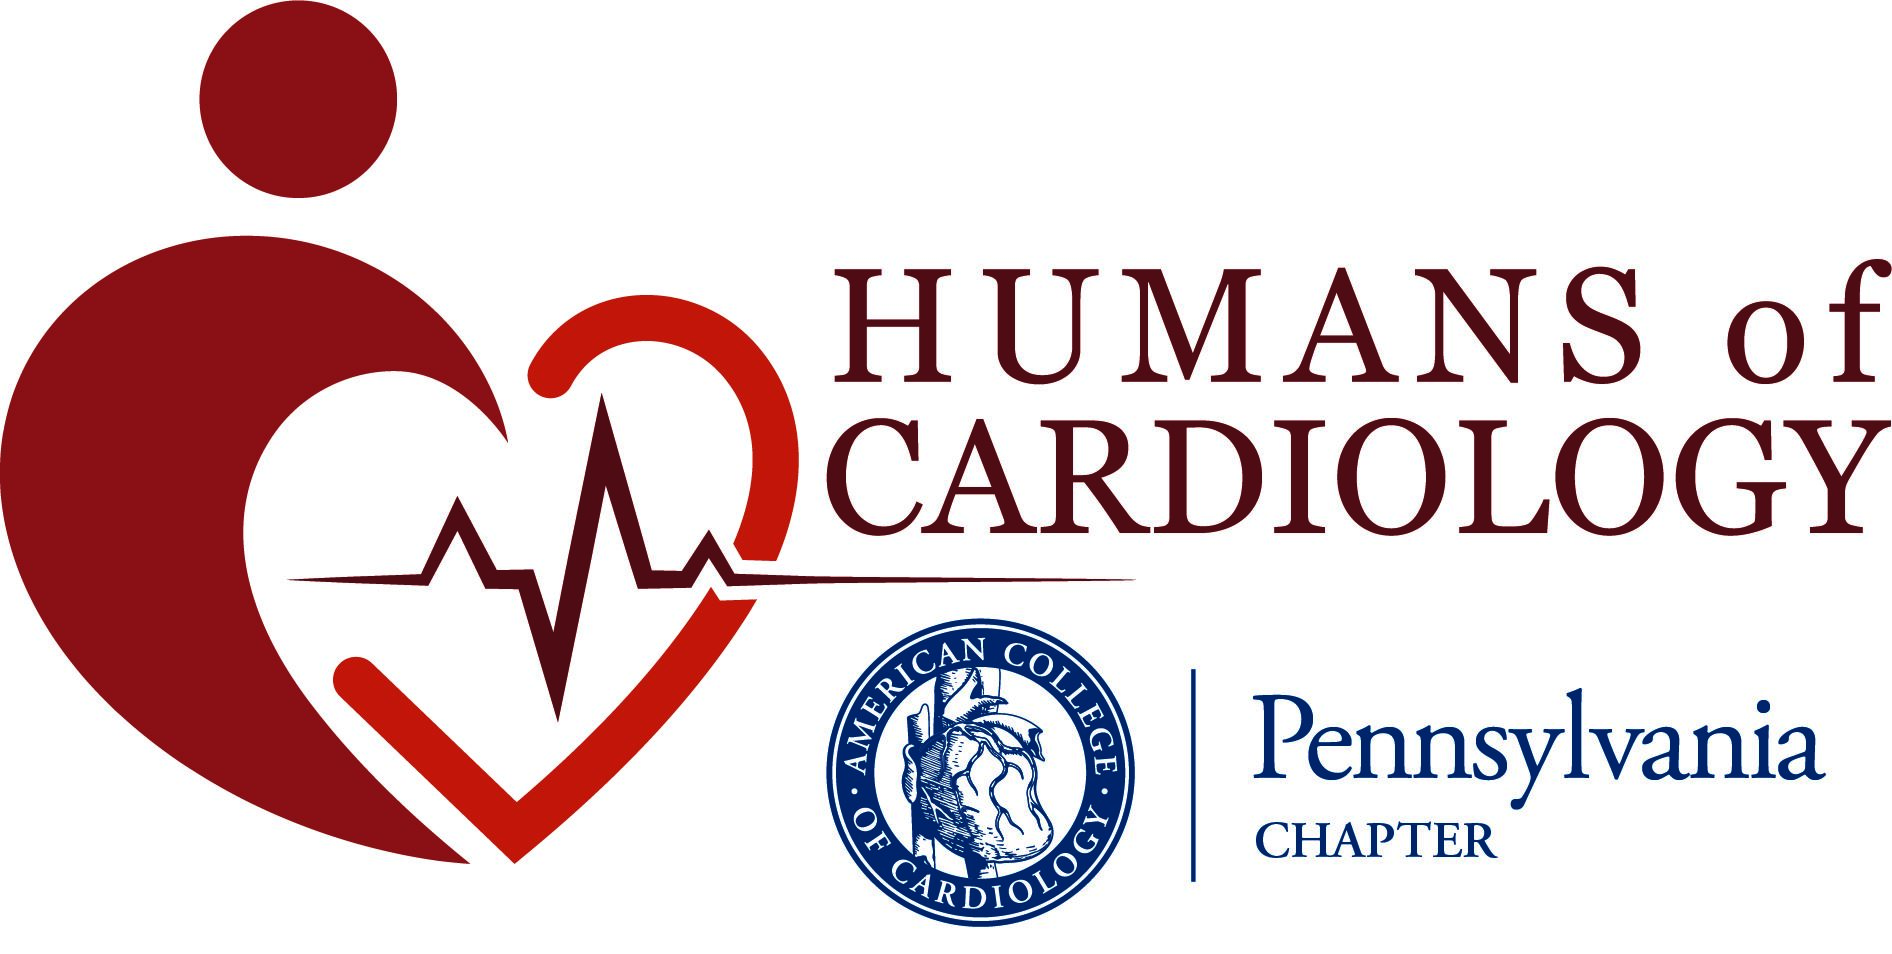 Humans of Cardiology logo